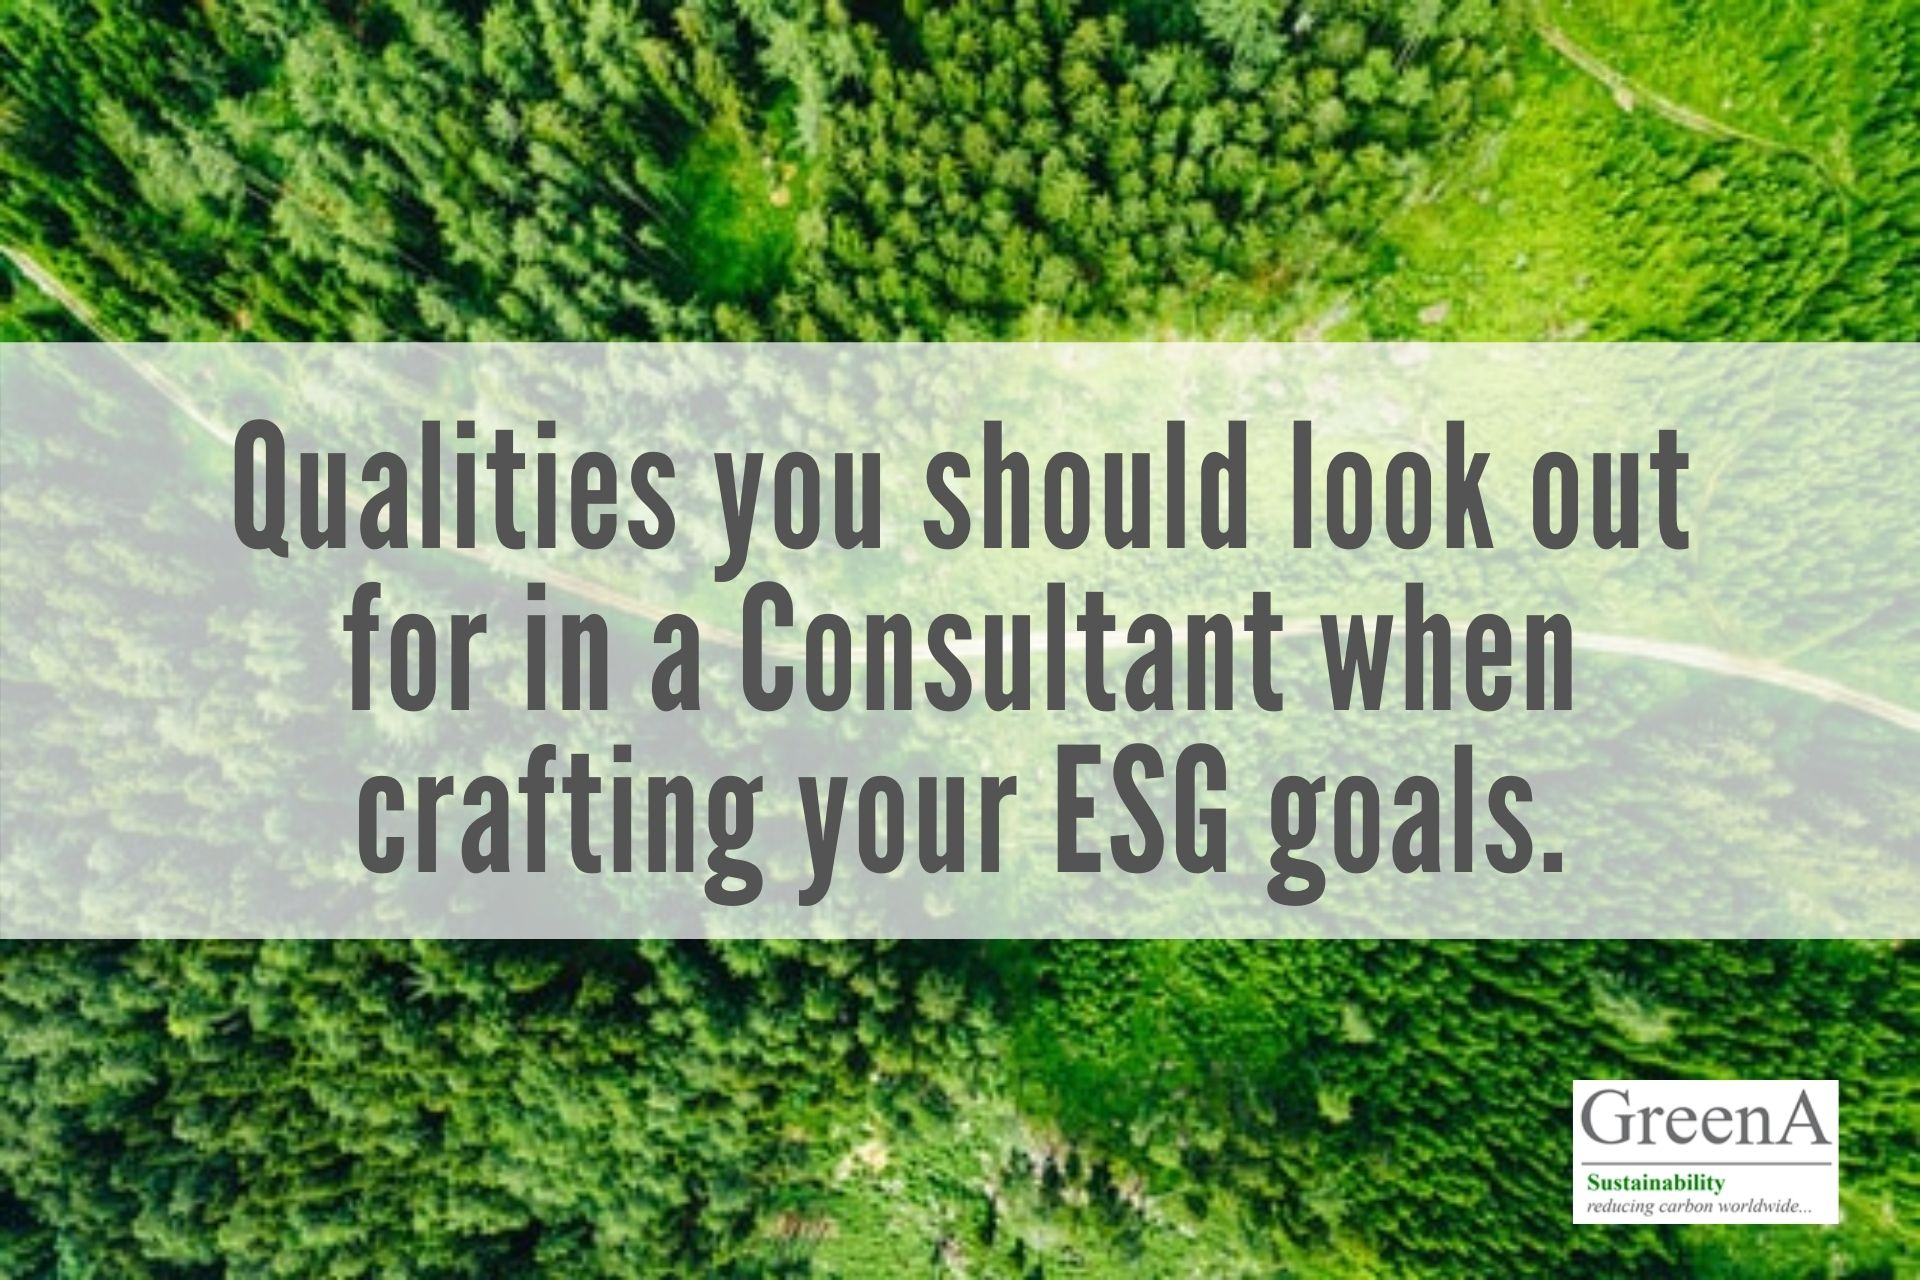 Qualities you should be looking out for in a Consultant to Craft your ESG goals